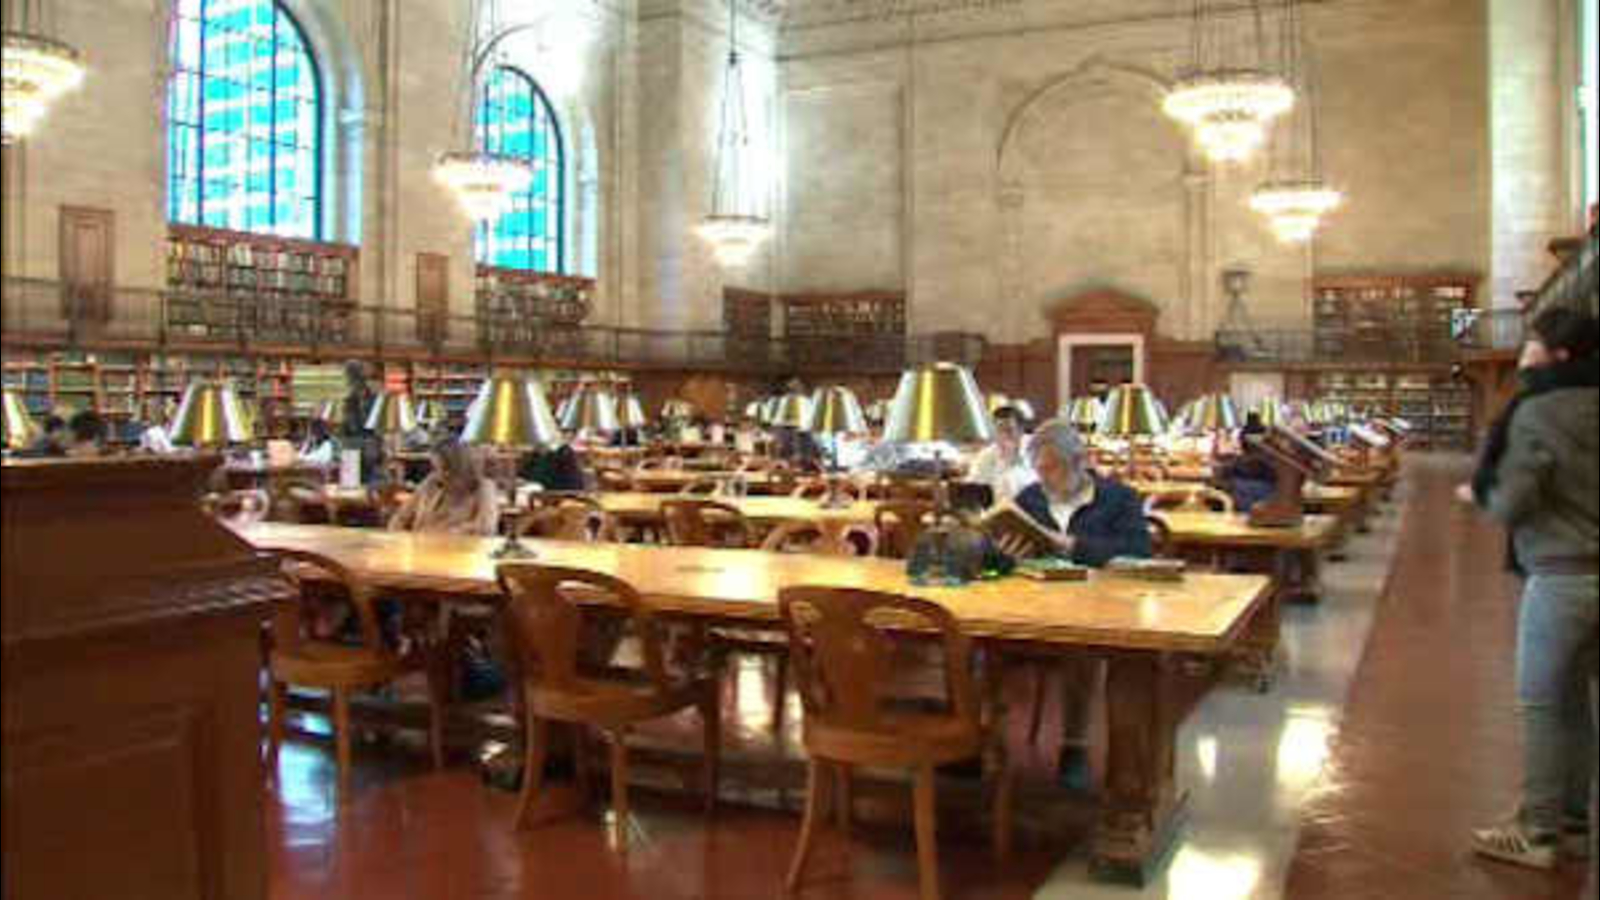 Iconic Reading Room At New York Public Library Reopens After Renovation Abc7 New York Mayor bill de blasio gave weinshall and schumer an. abc7ny